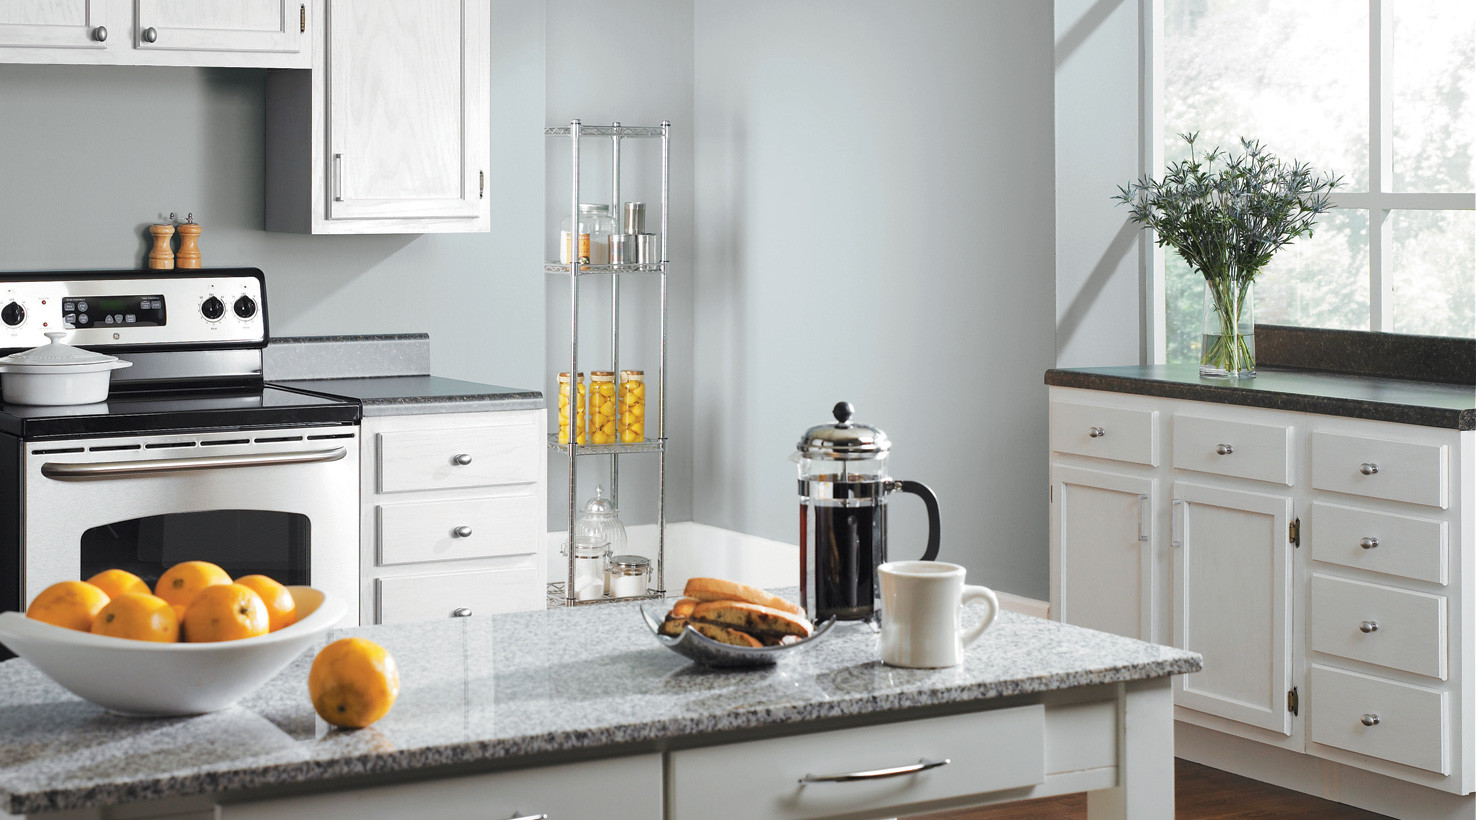 Best ideas about Paint Colors For Kitchen . Save or Pin Kitchen Color Inspiration Gallery – Sherwin Williams Now.